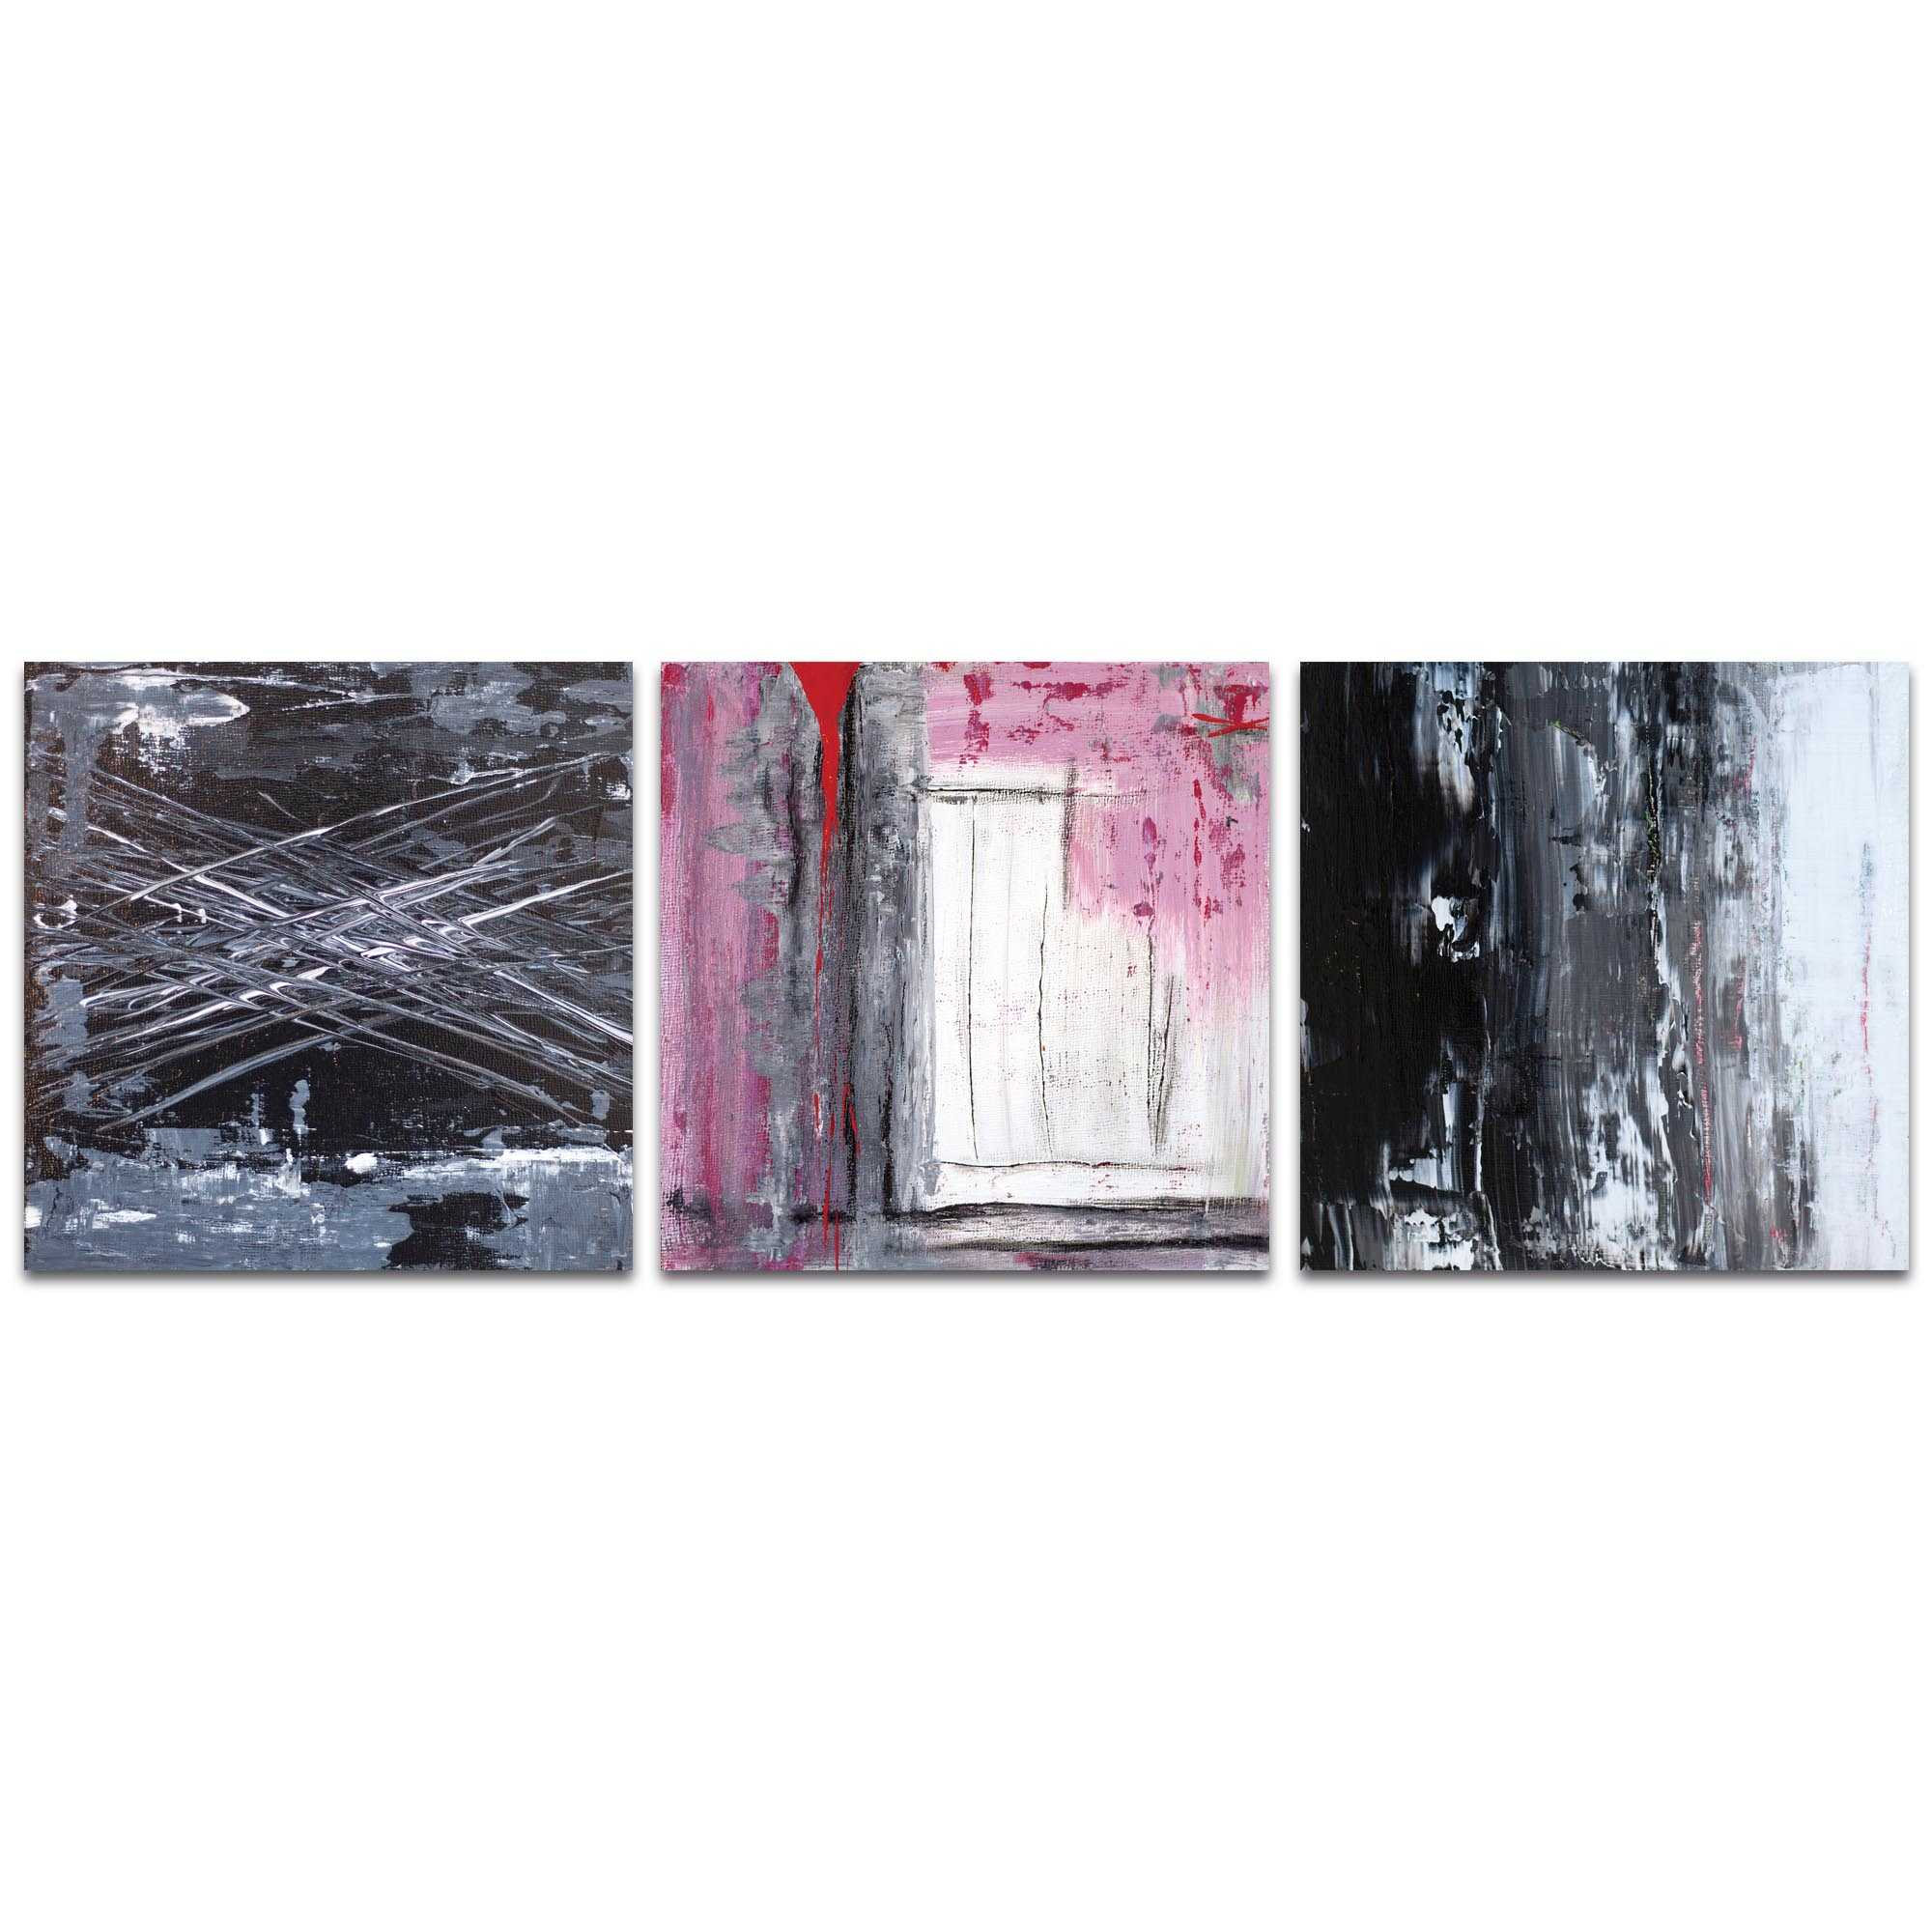 Abstract Wall Art 'Urban Triptych 6 Large' - Urban Decor on Metal or Plexiglass